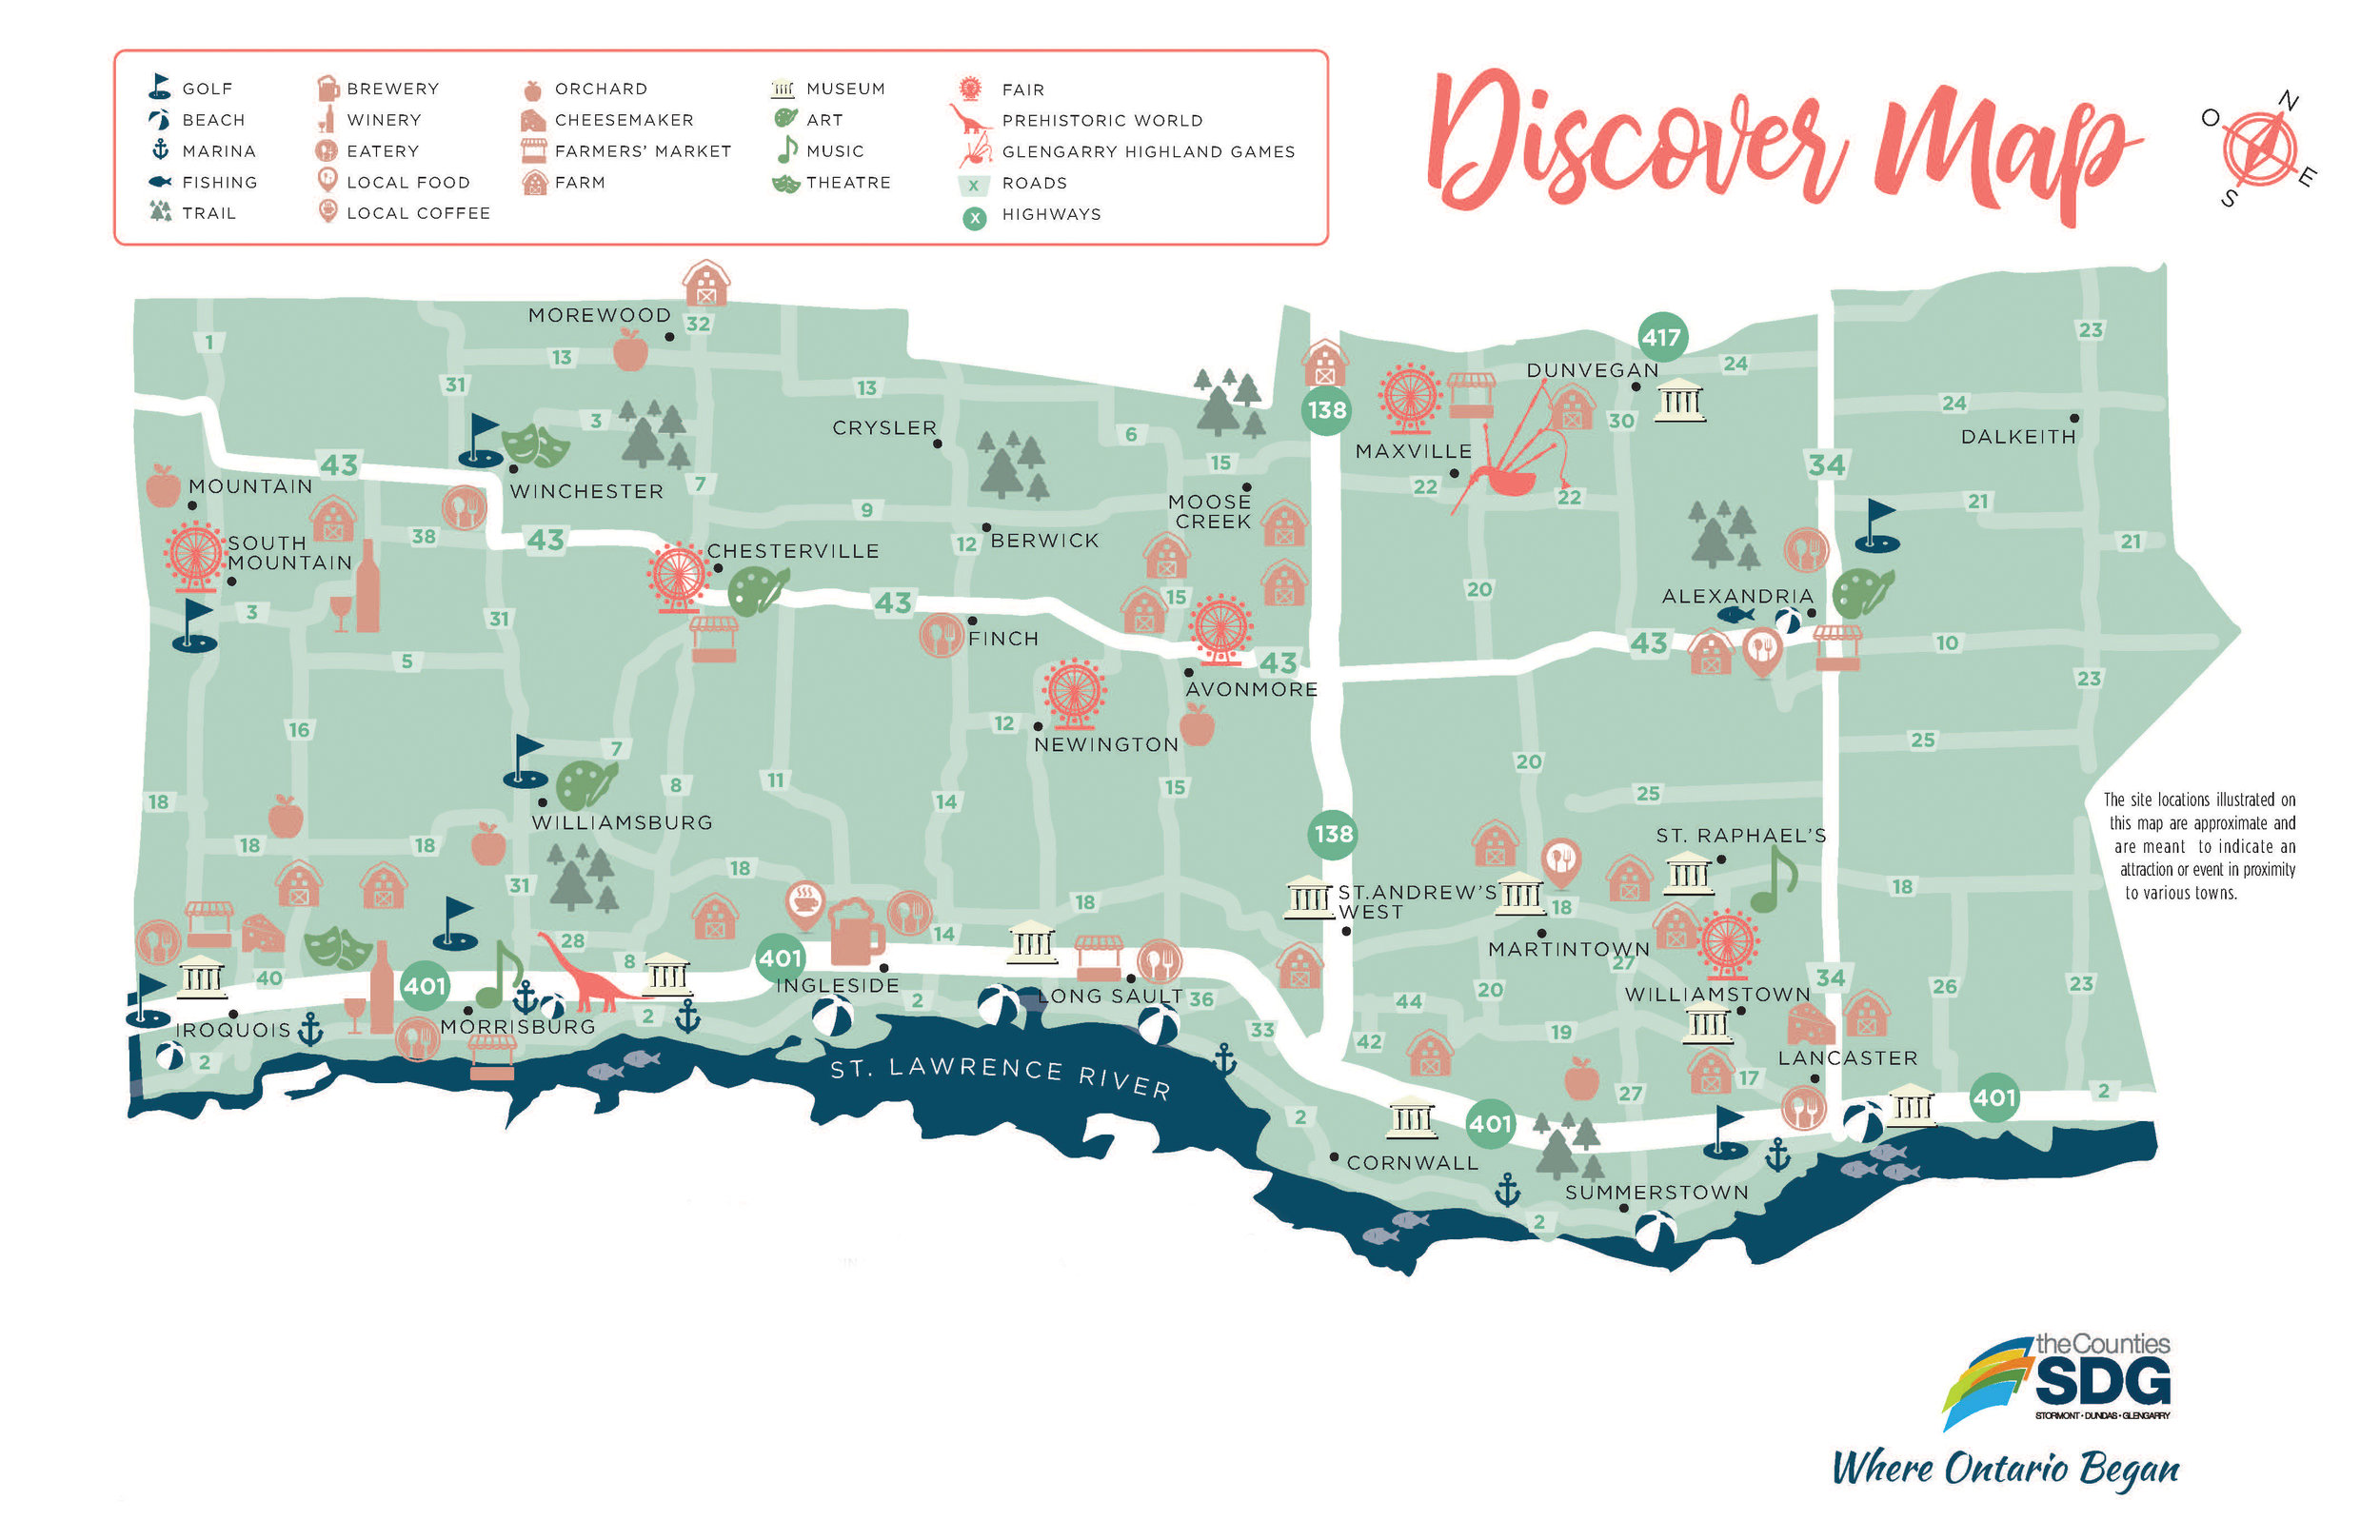 Download the Discover Map today!